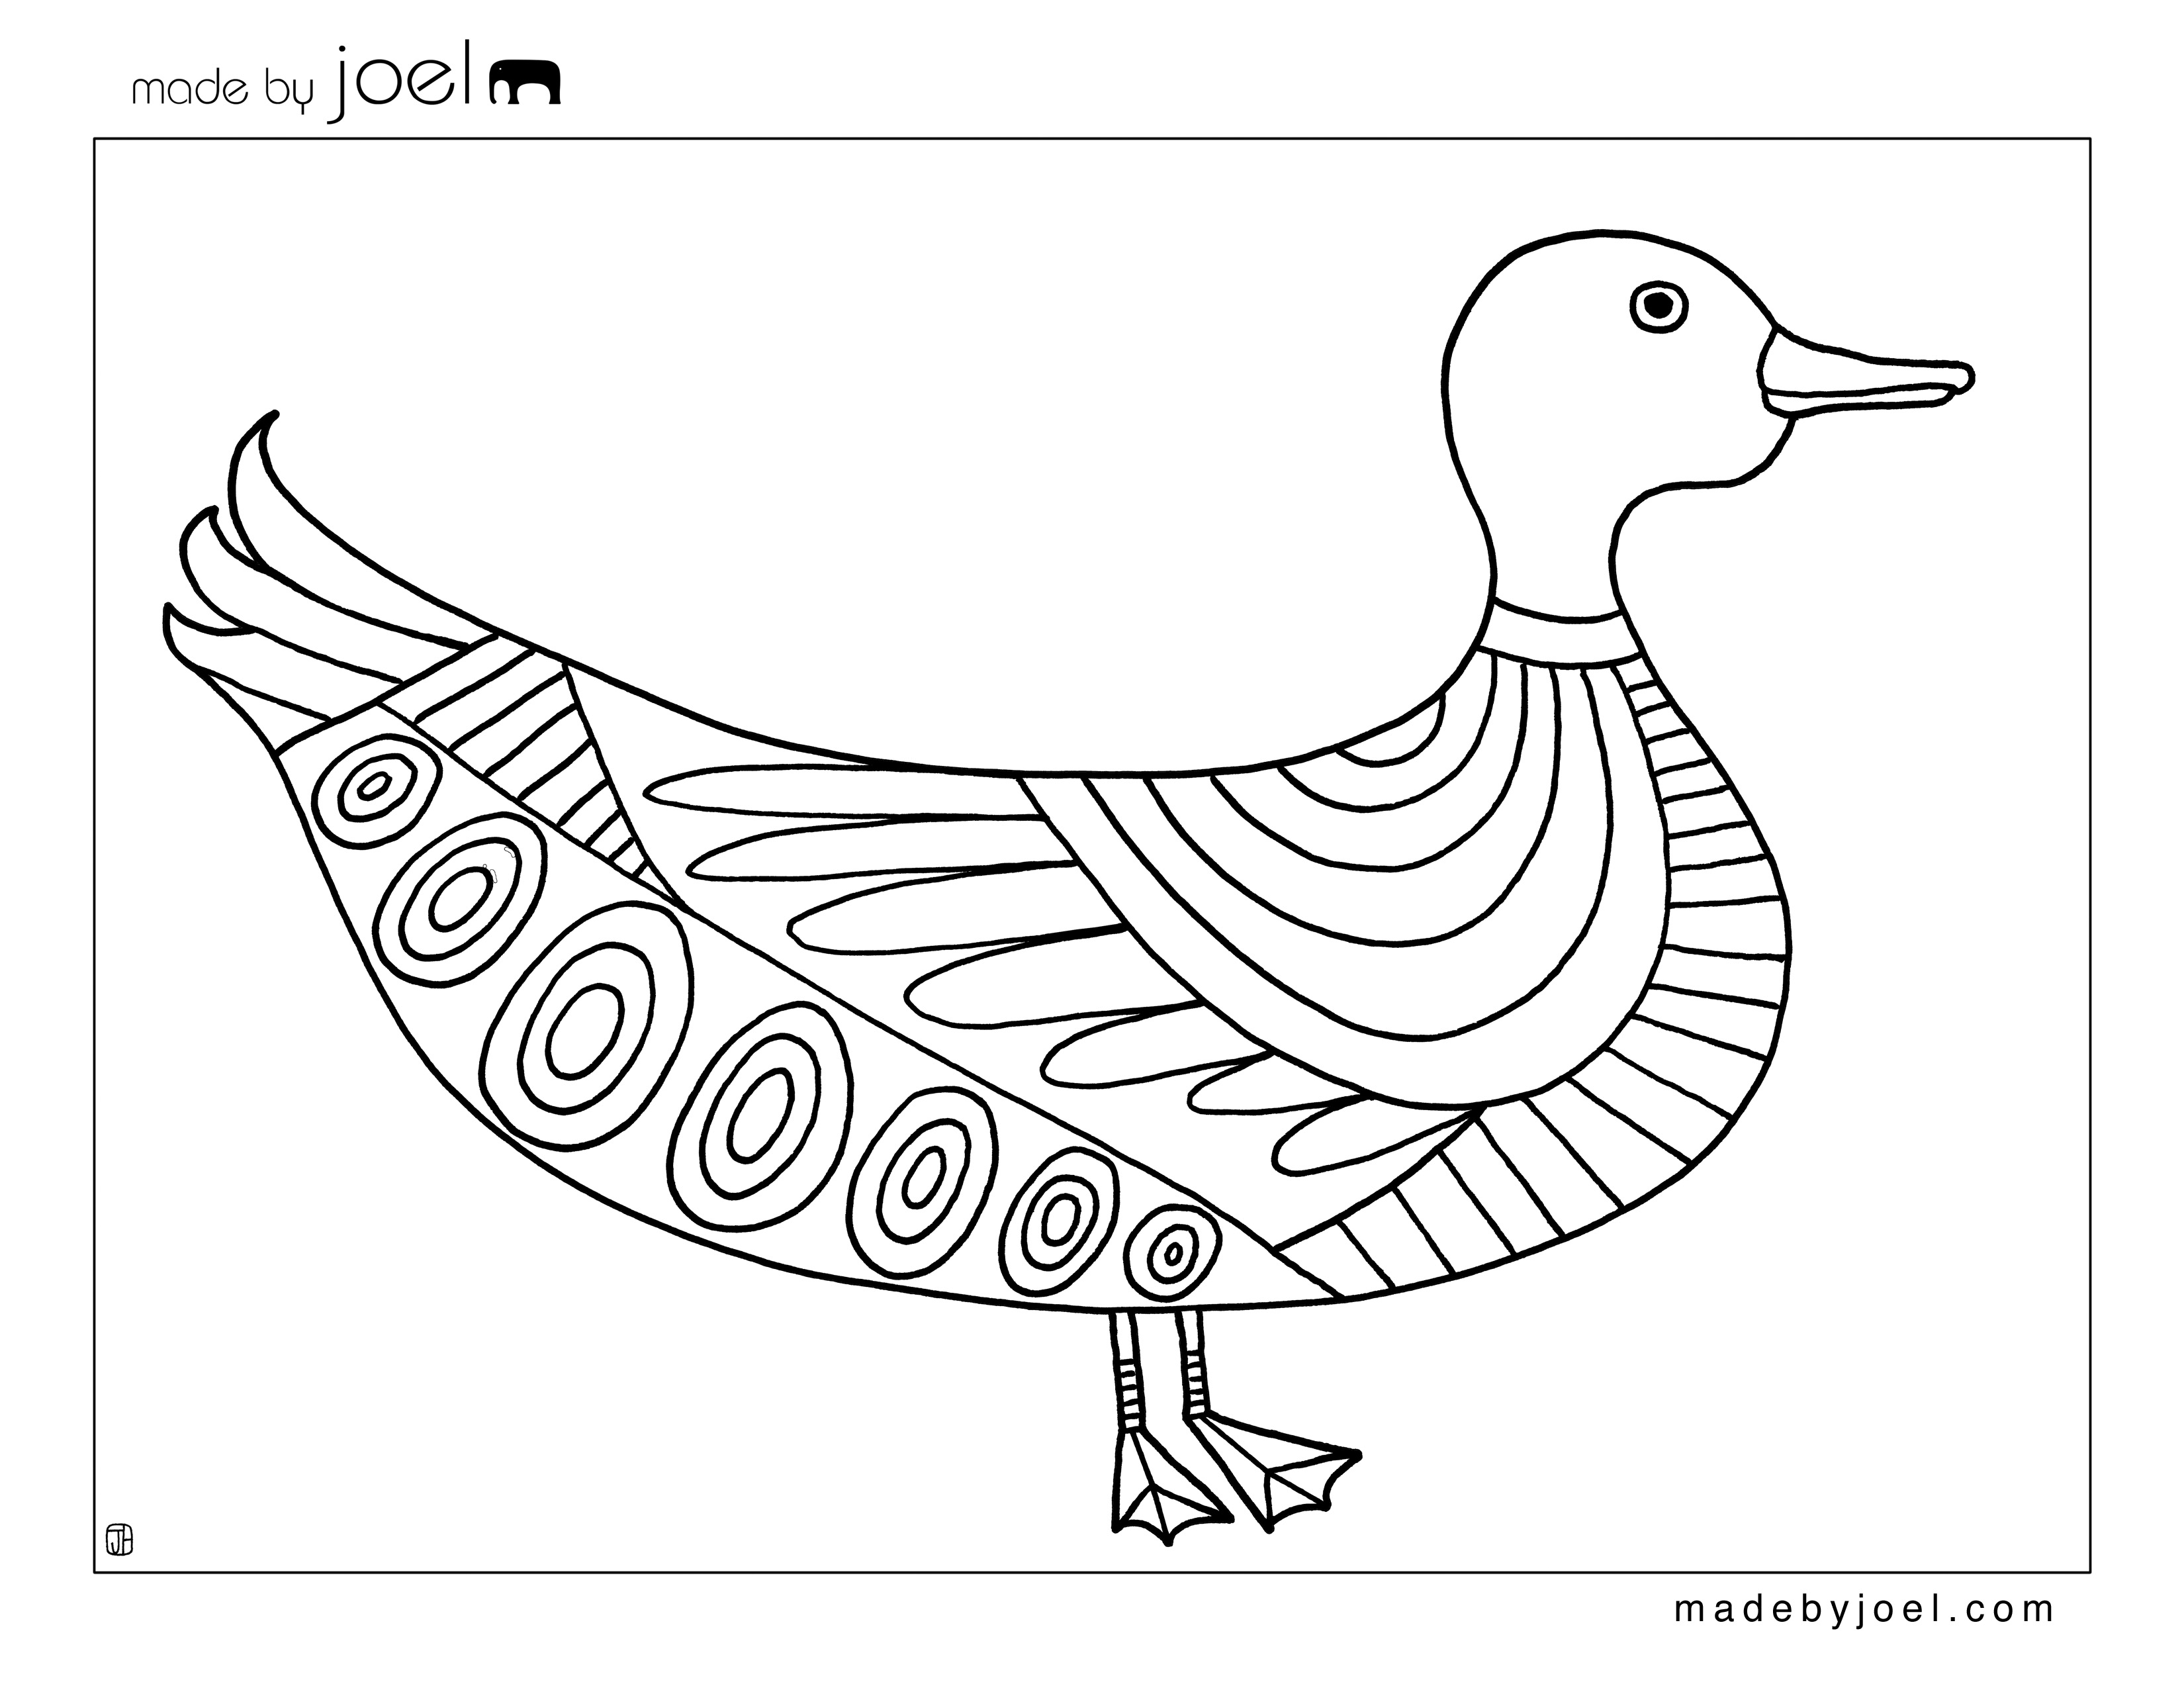 template for coloring 11 coloring pages for adults jpg psd vector eps template coloring for